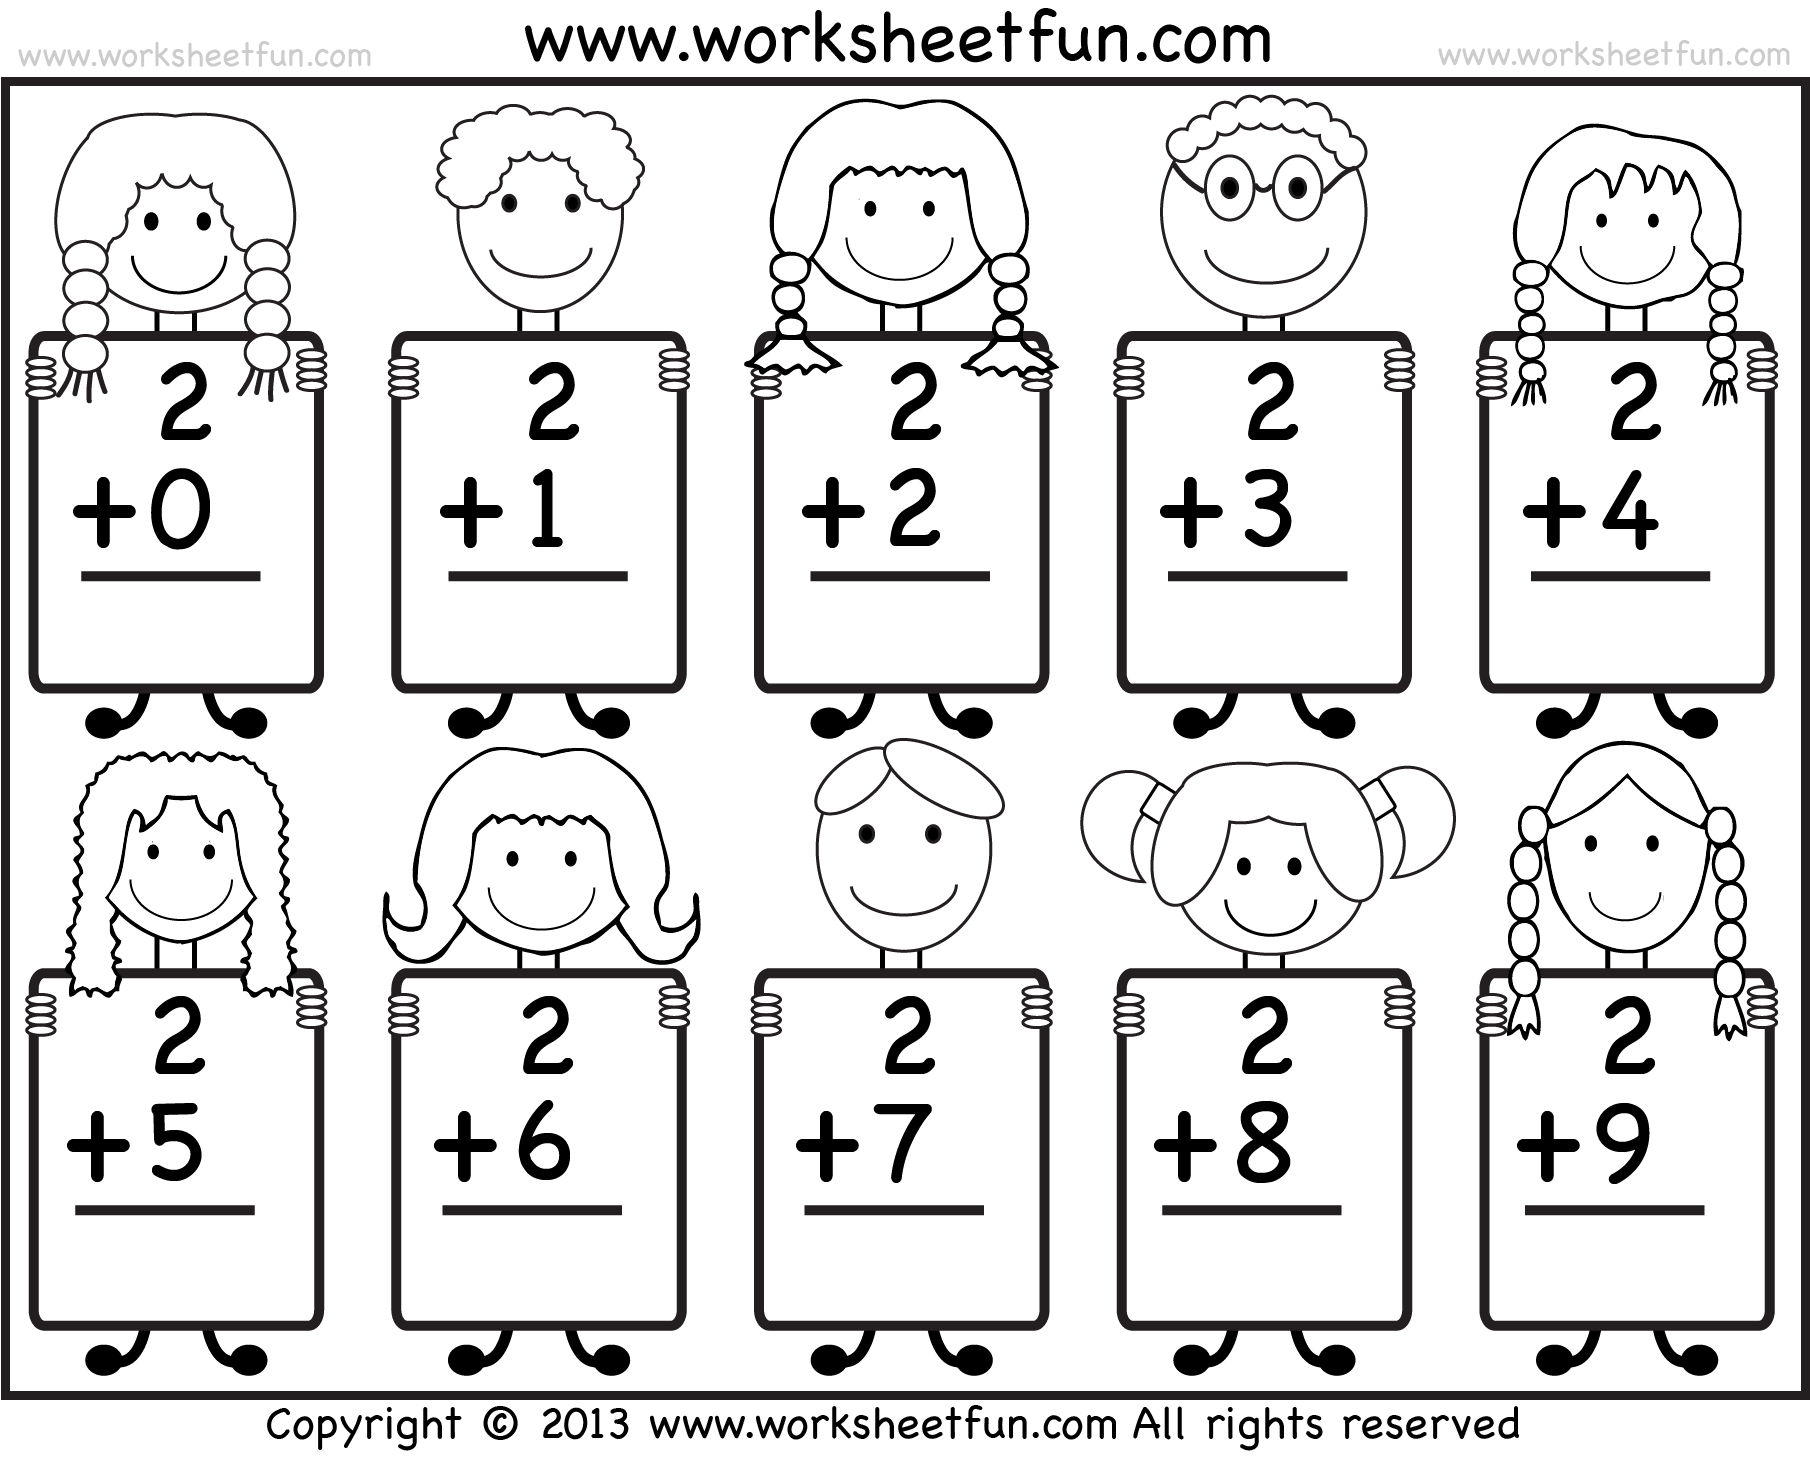 2 Addition Facts Free Worksheets For Every Fact Family Sweet Pea Needs Pictures To Make Math